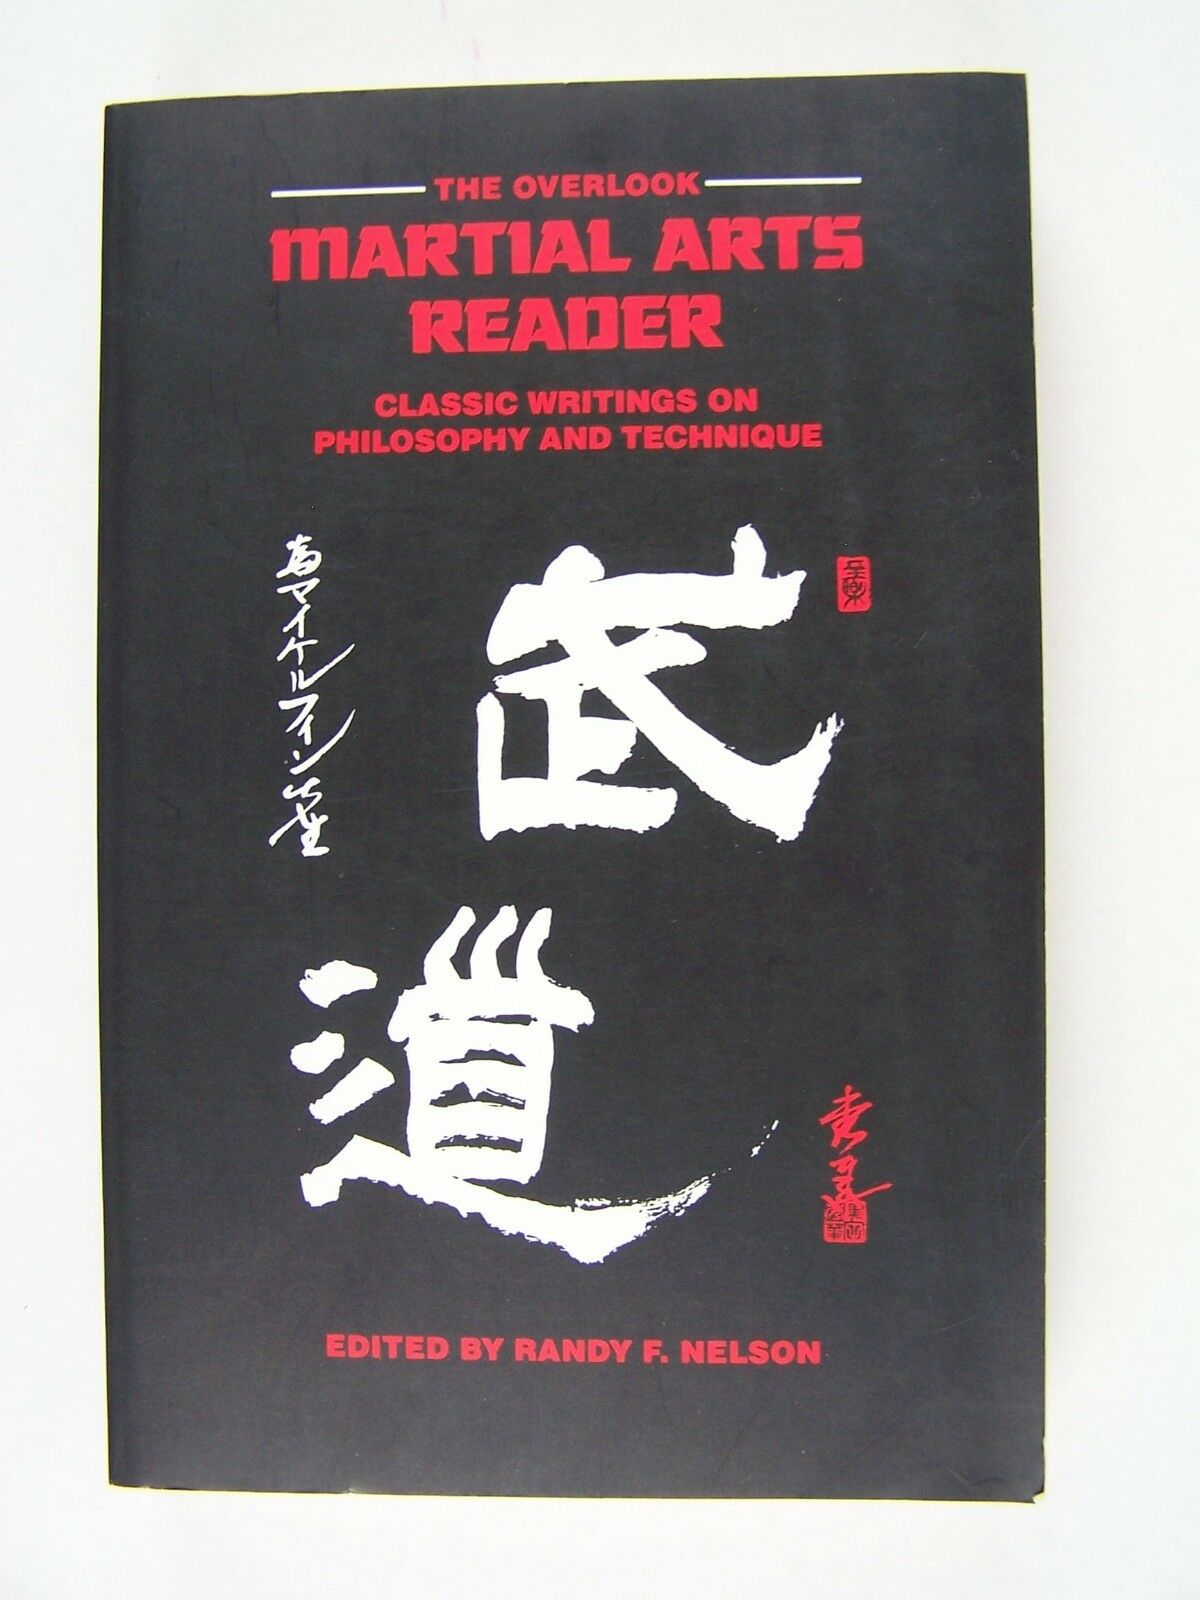 The Overlook Martial Arts Reader Paperback 1992 by Rand